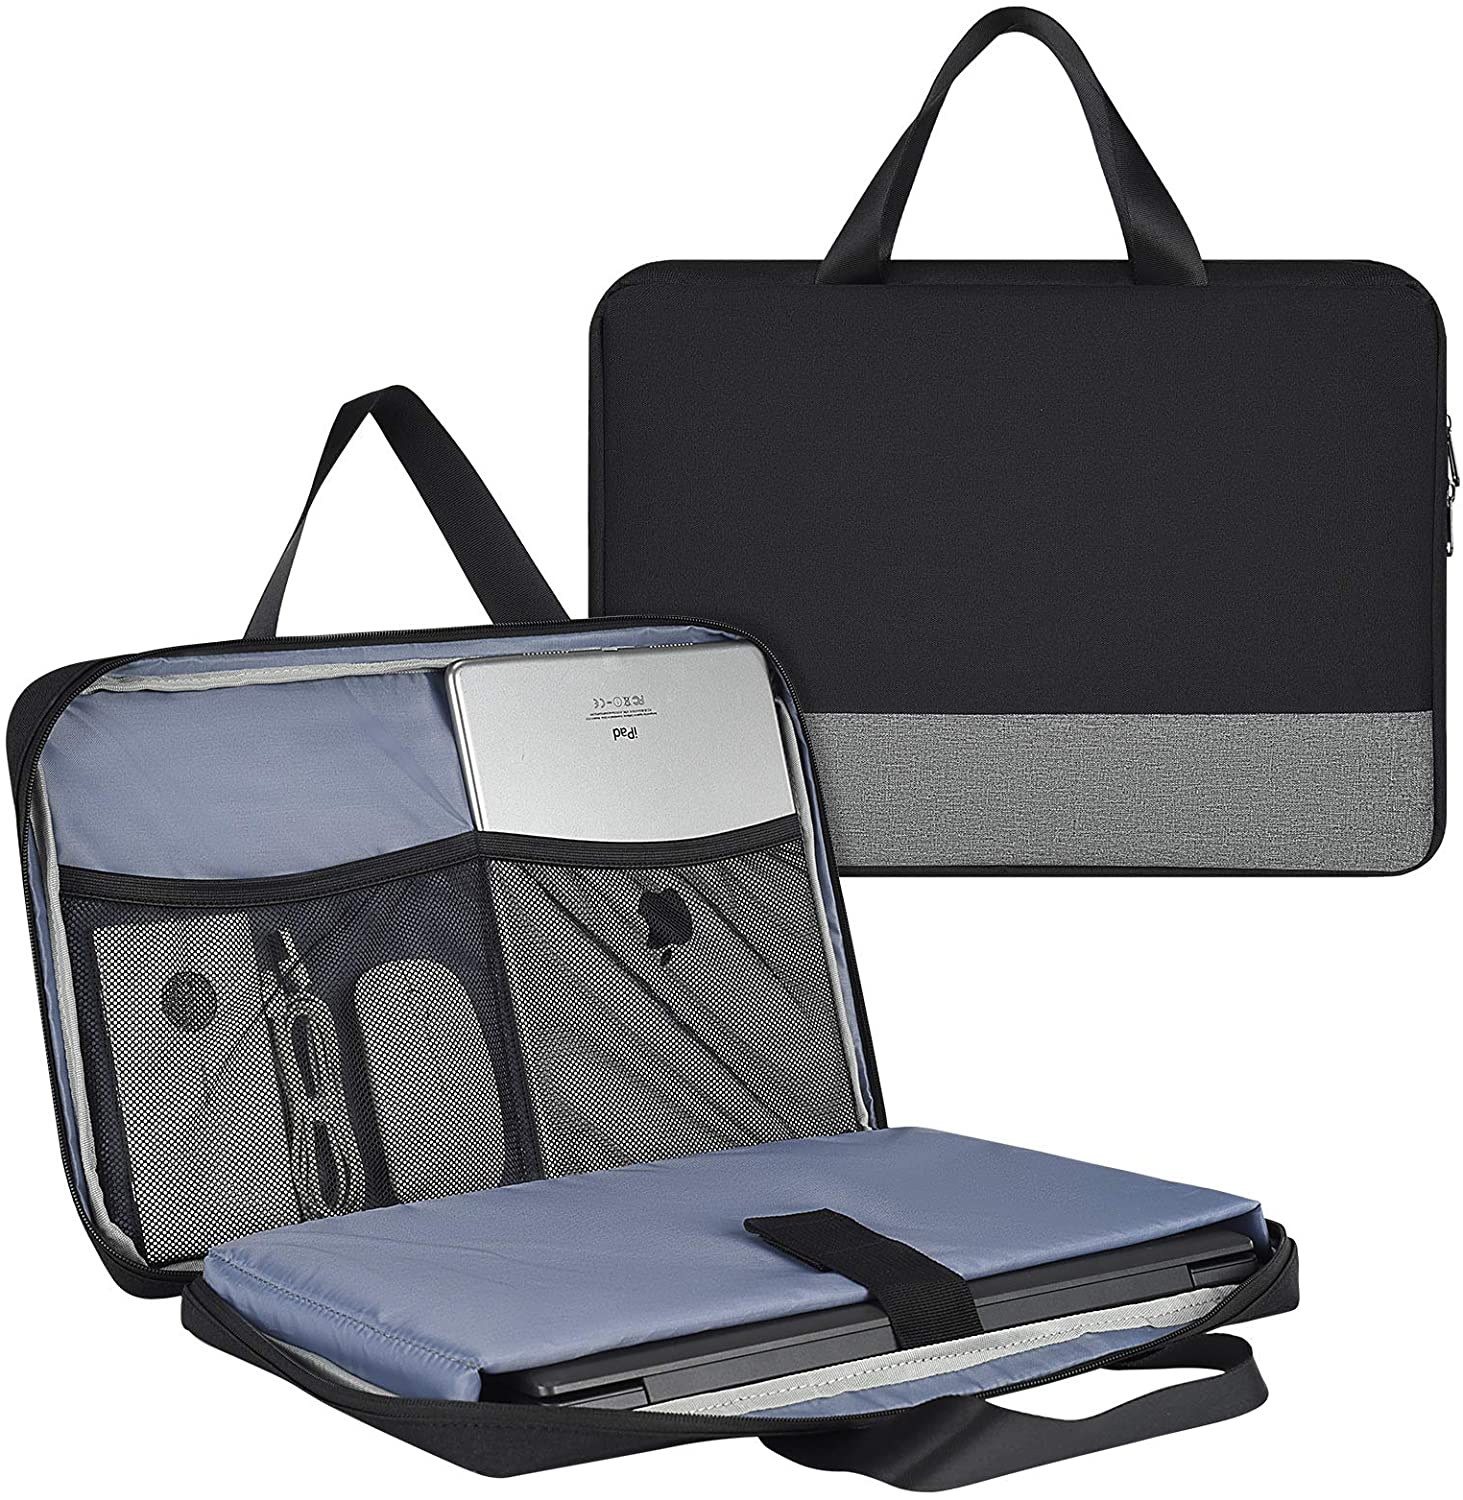 11.6-13 Inch Waterproof Laptop Bag Case for Men Women TSA Briefcase with Accessories Organizer for Acer Chromebook Spin 311, Lenovo Chromebook 11.6, Surface Pro 12.3, Samsung HP ASUS Dell Case, Black